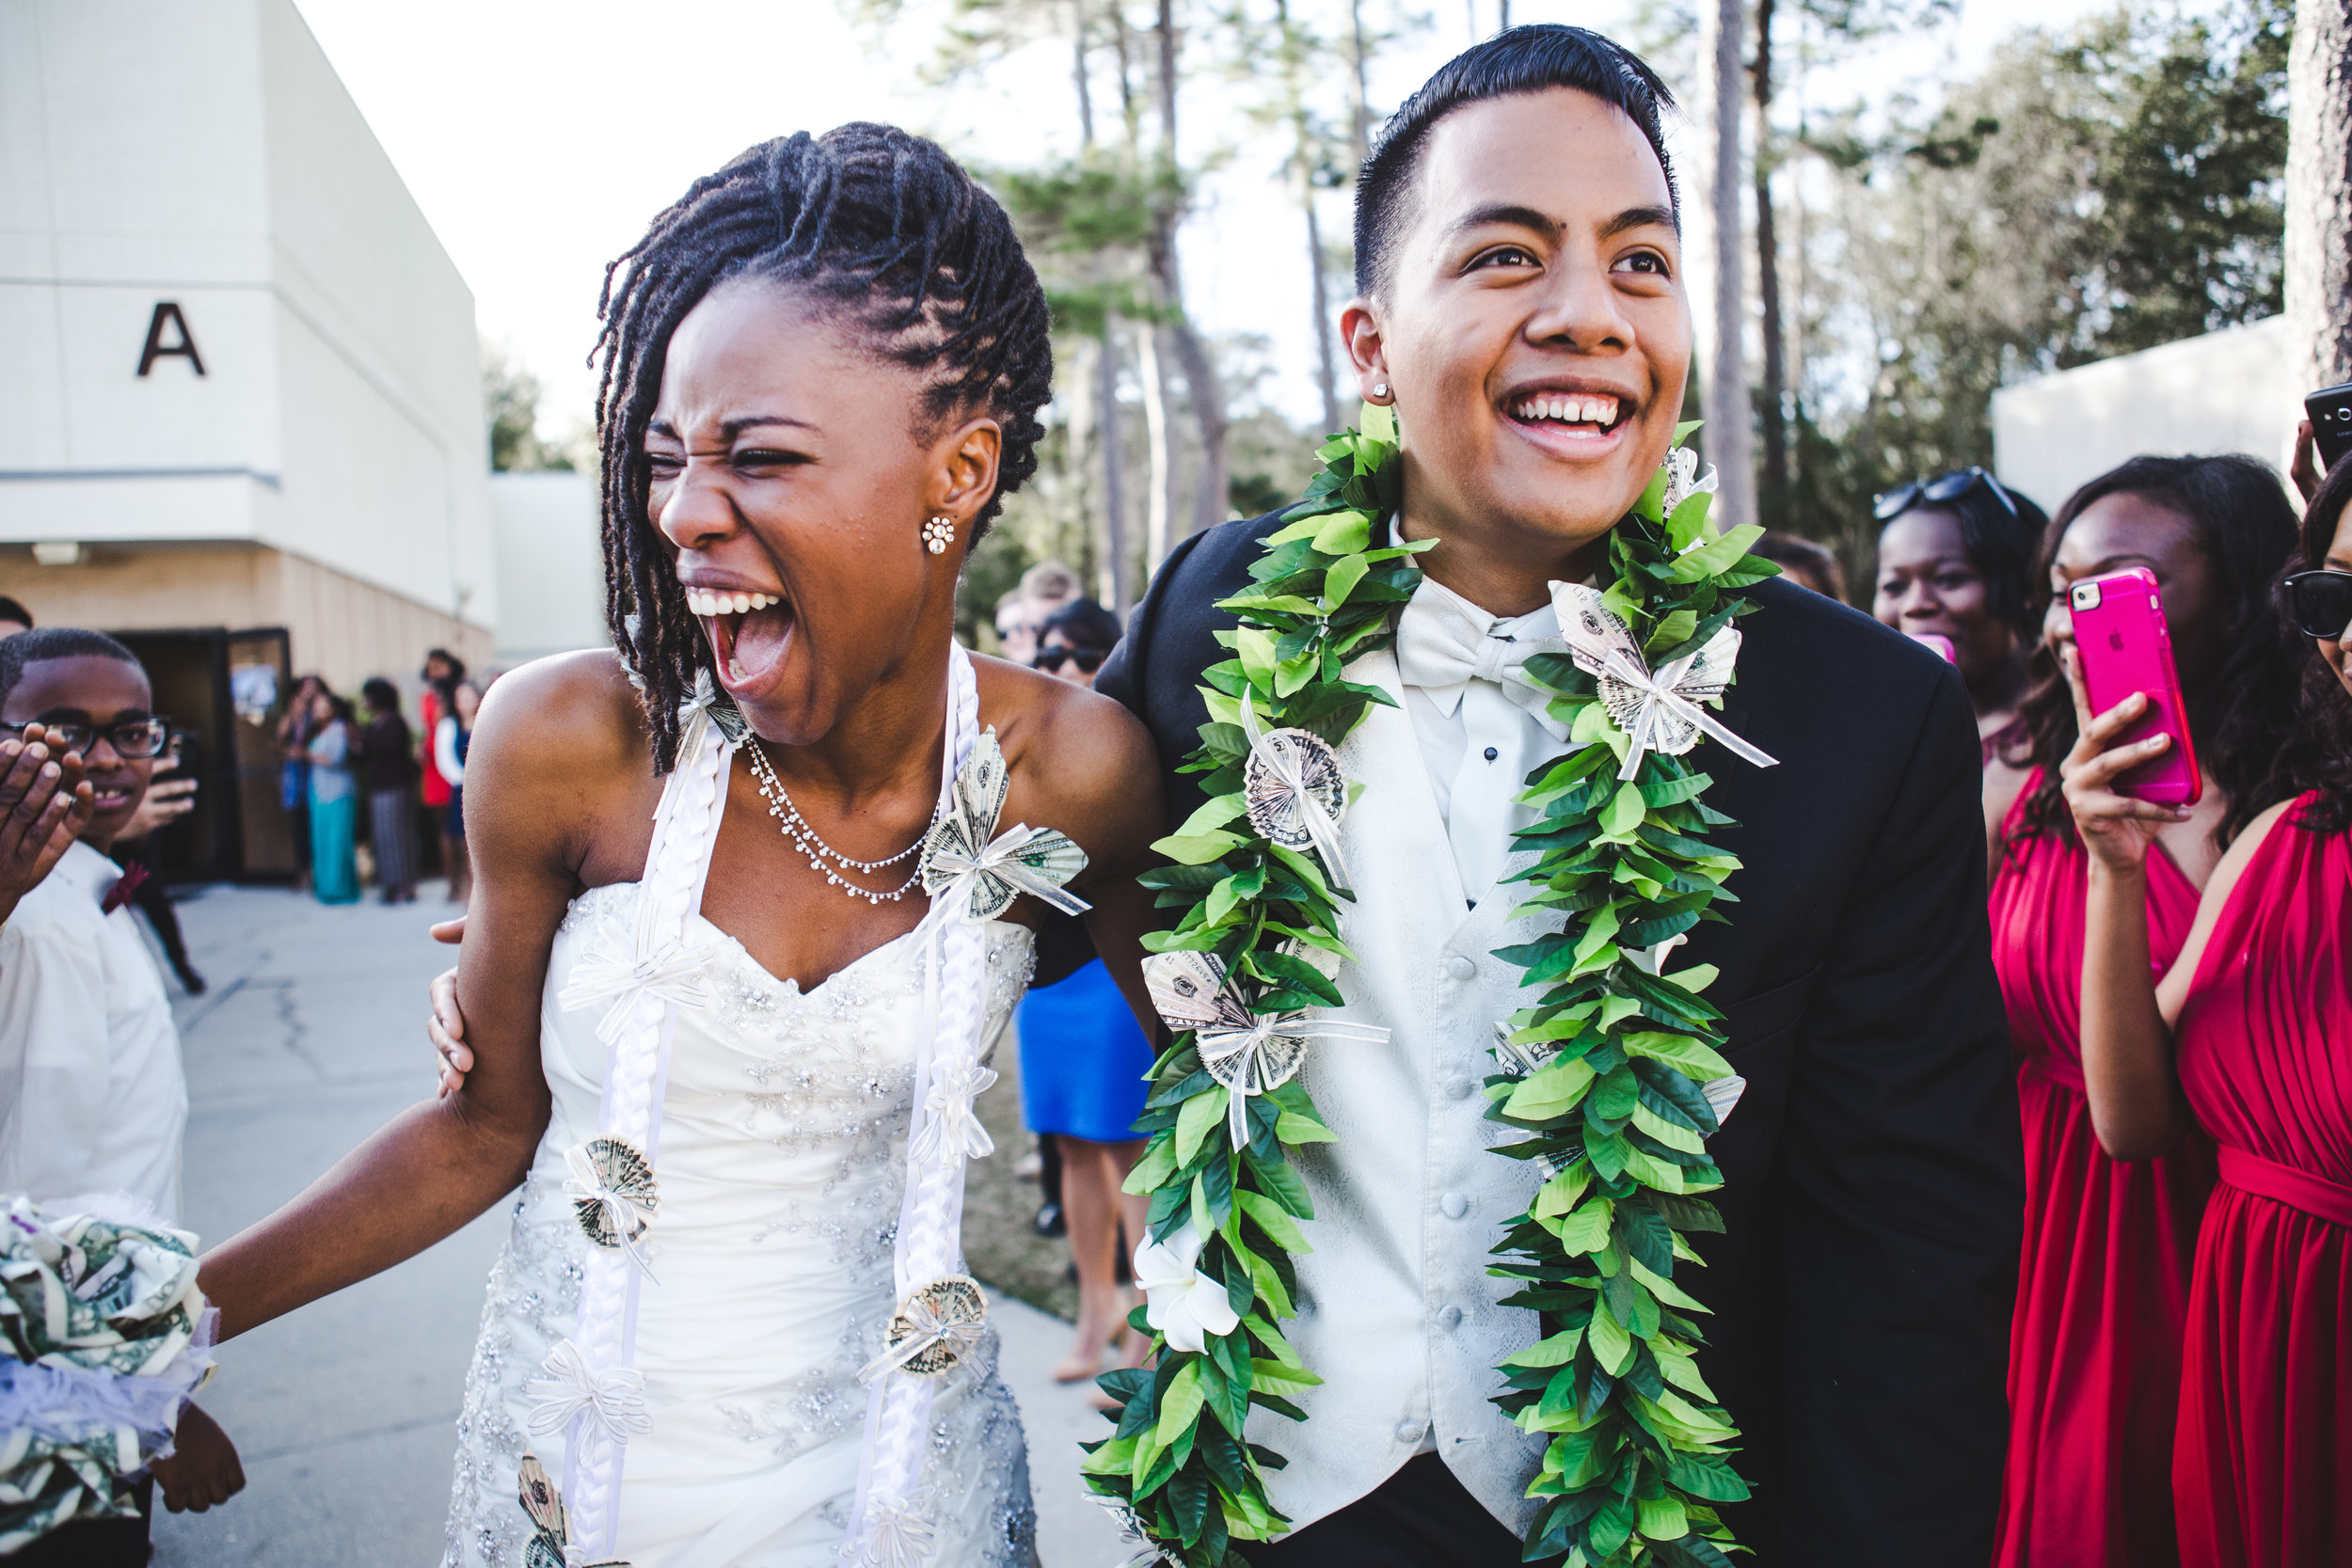 A wedding, engagement, love, newlywed image of an interracial married couple-taken by Miami Wedding Photographer, Javier Edwards of El Roi Photo, in Miami, Florida, for a Miami Wedding